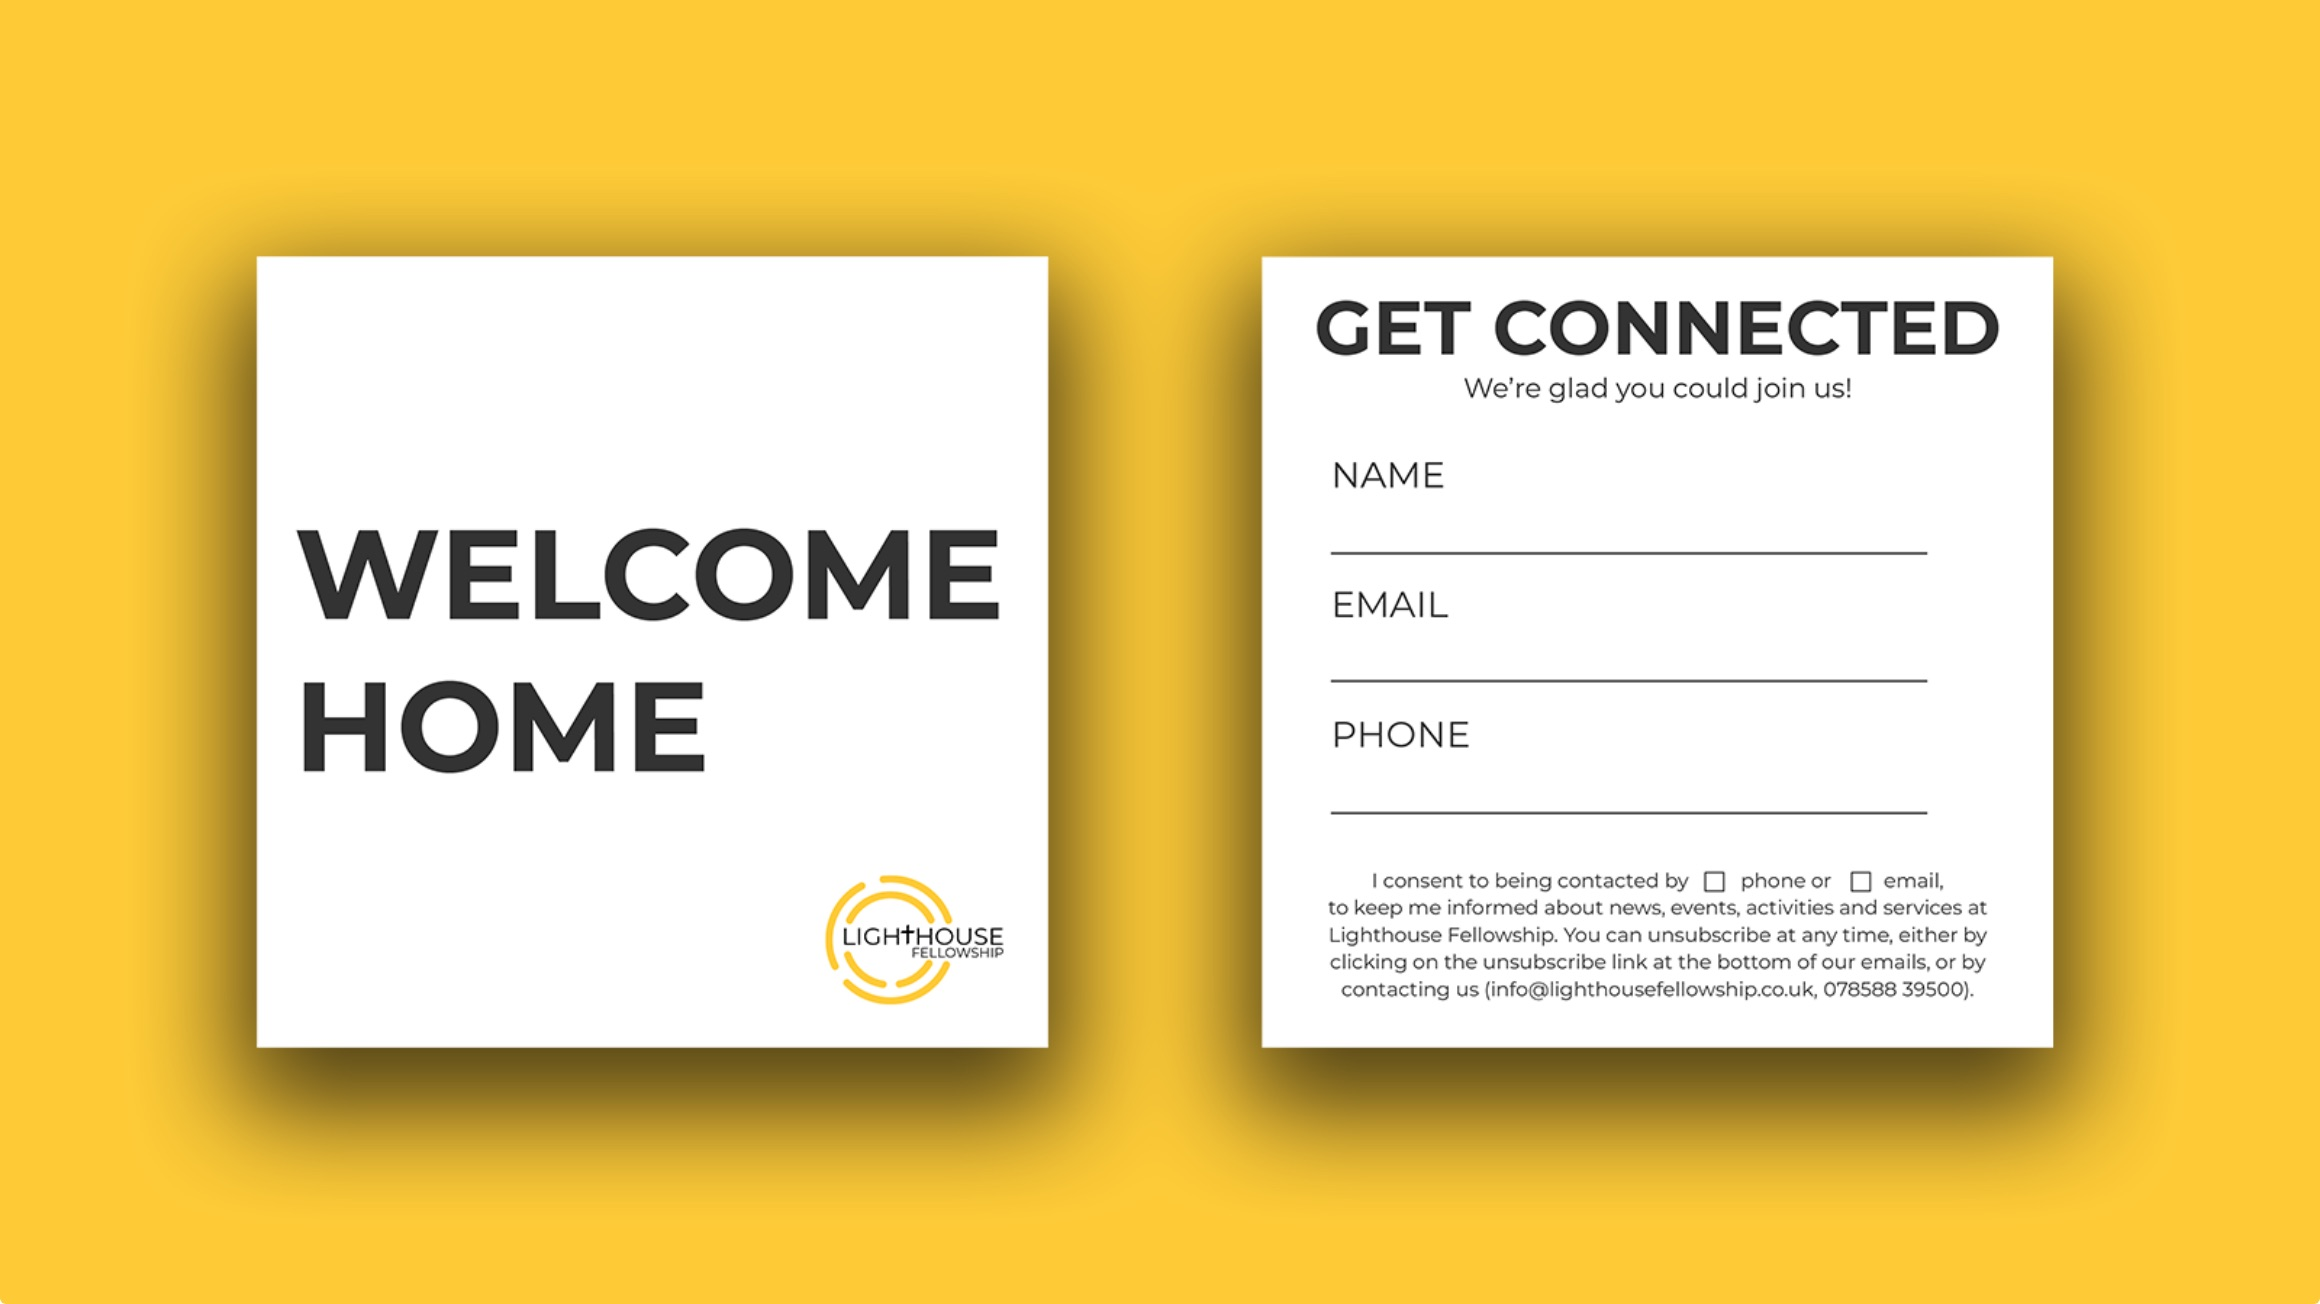 Design of connection cards for Lighthouse Fellowship